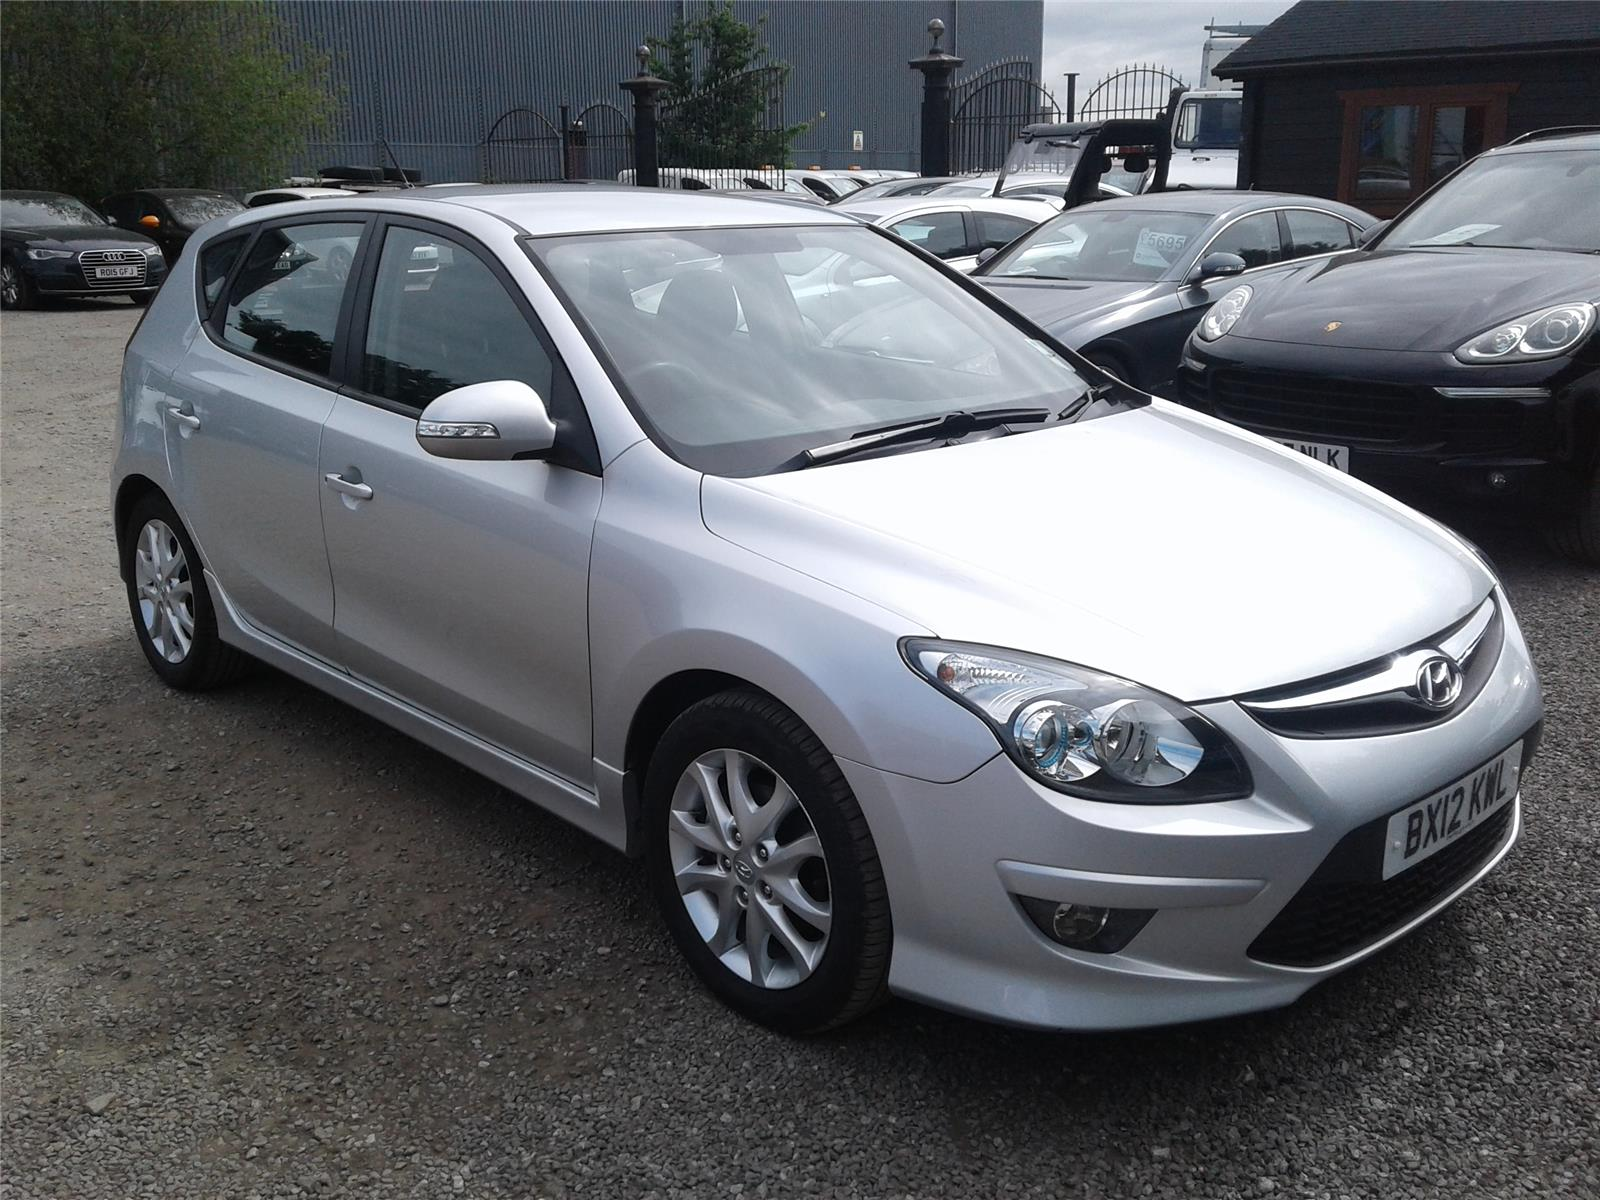 2012 Hyundai i30 Comfort 1582 Diesel Manual 6 Speed 5 Door Hatchback